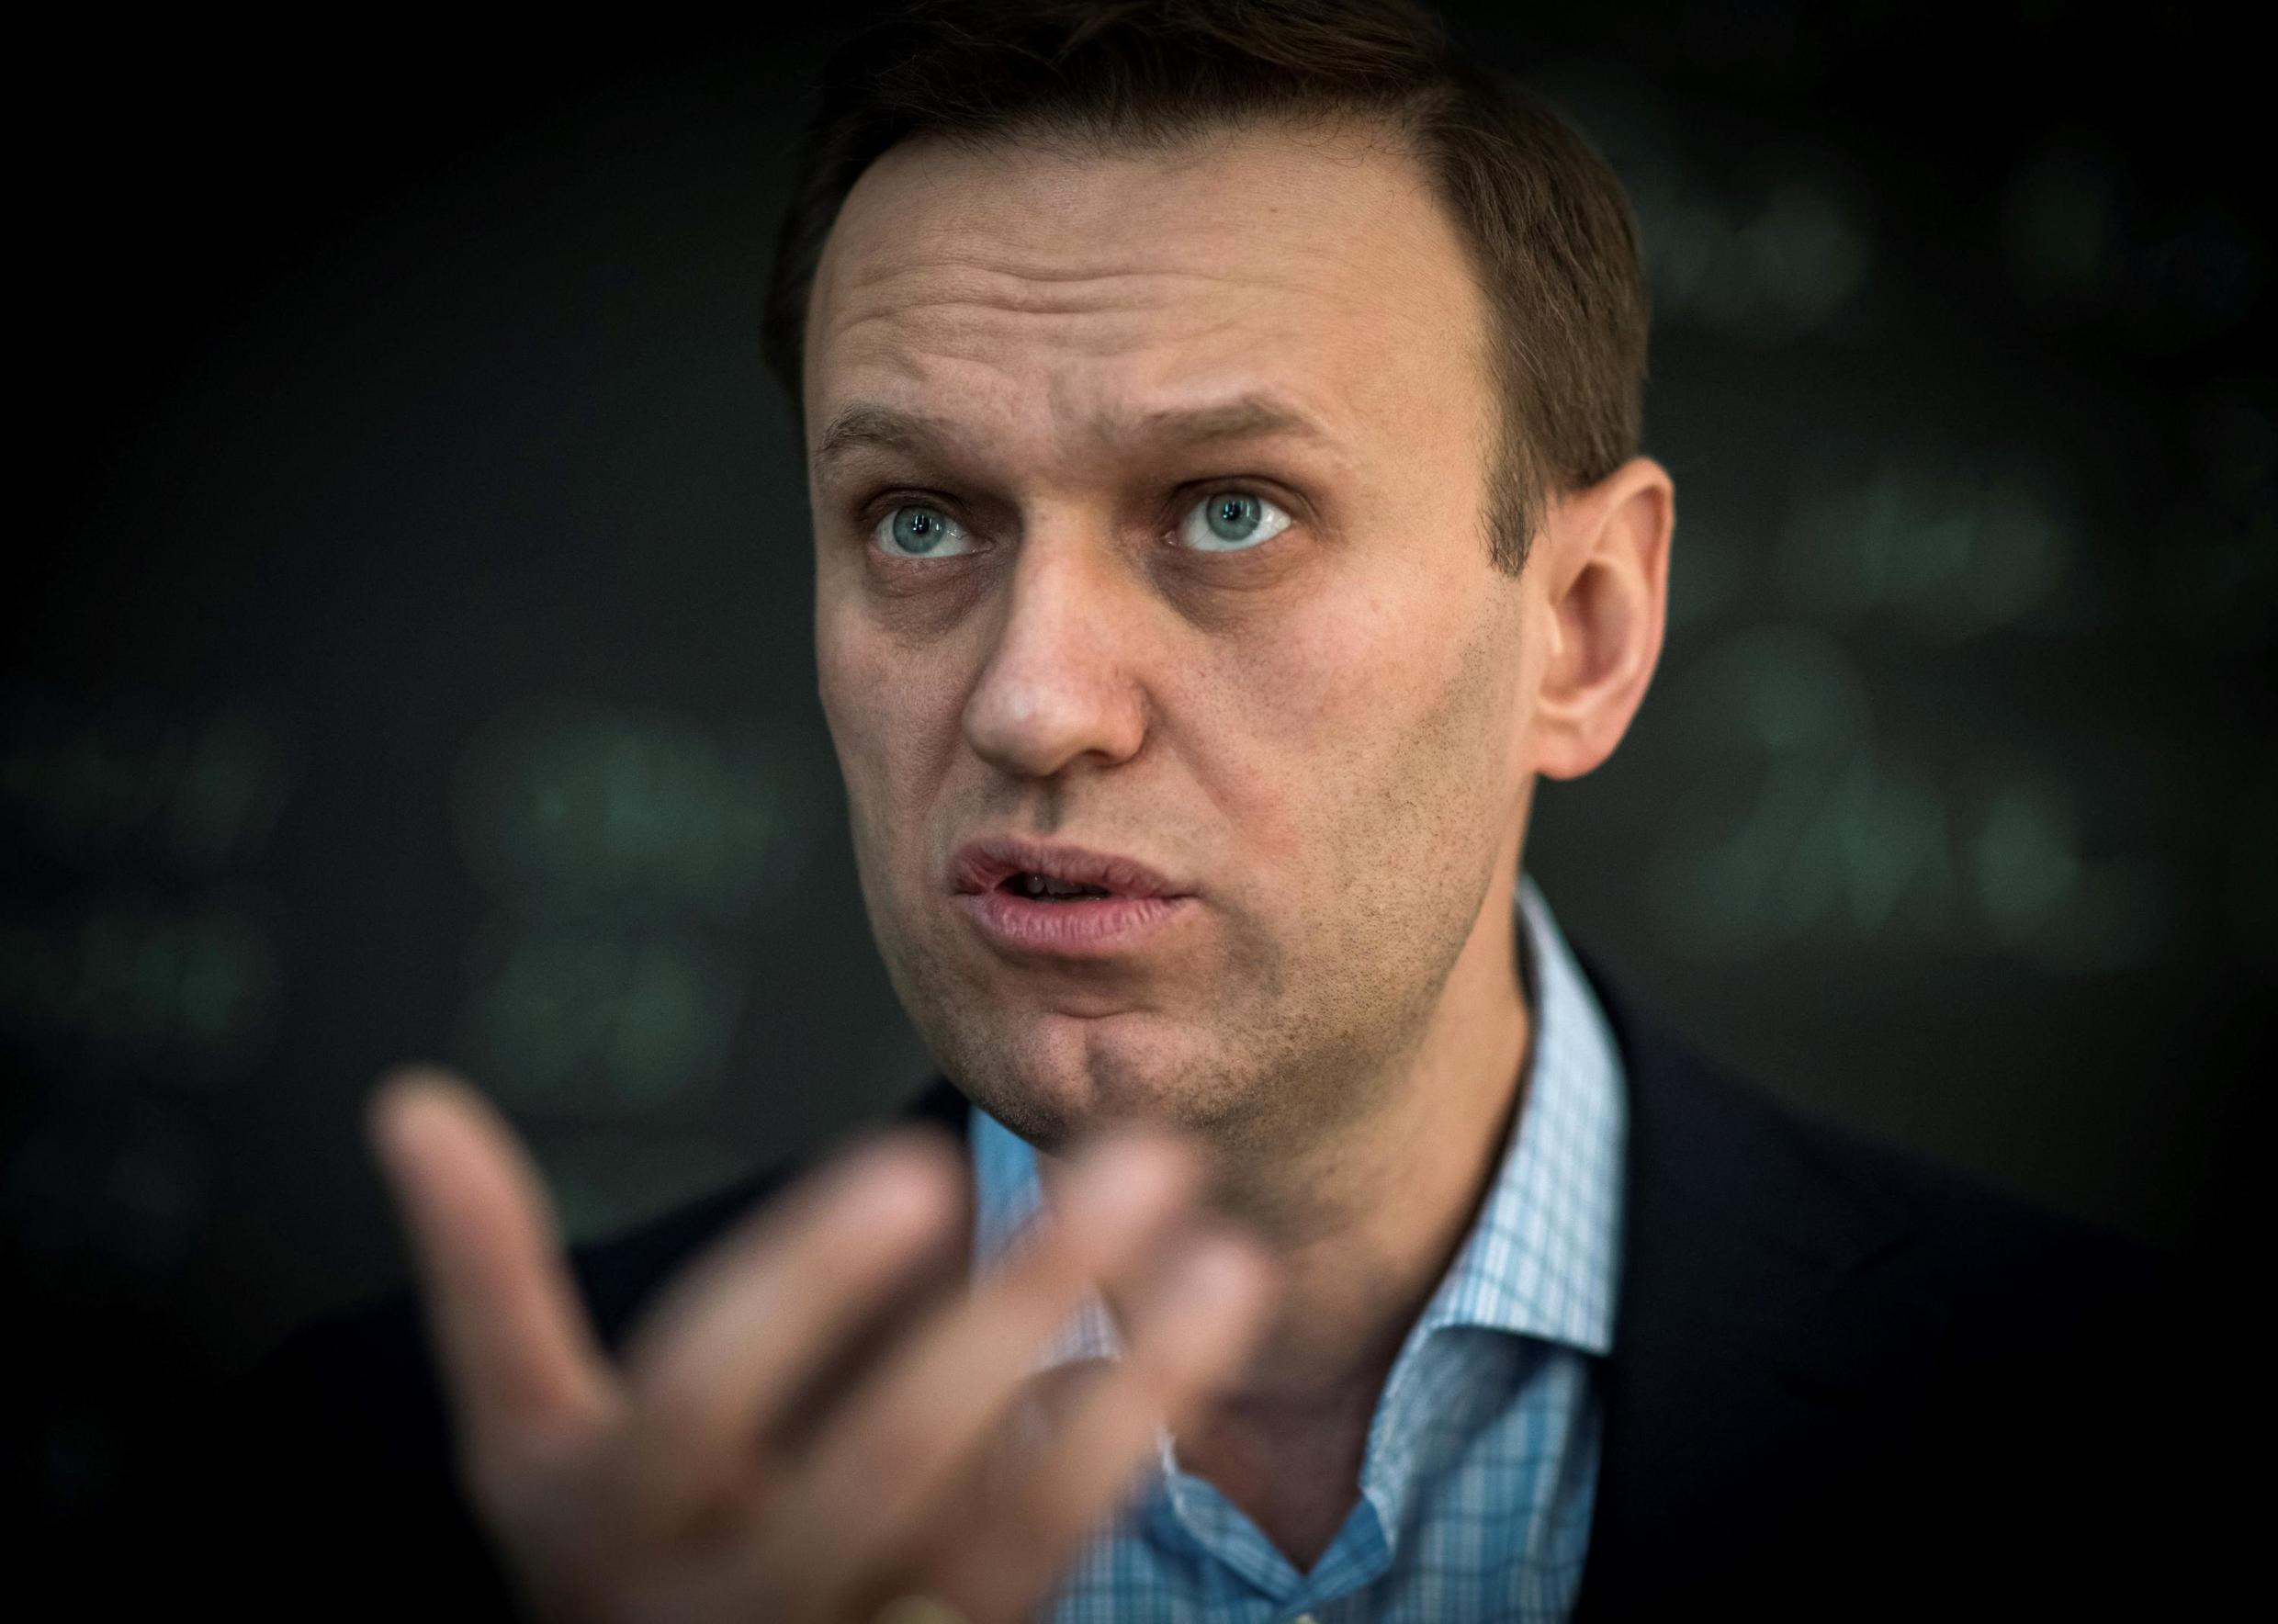 Alexeï Navalny, the Russian opposition leader currently being treated in Berlin for suspected poisoning after becoming ill on a flight last Thursday.